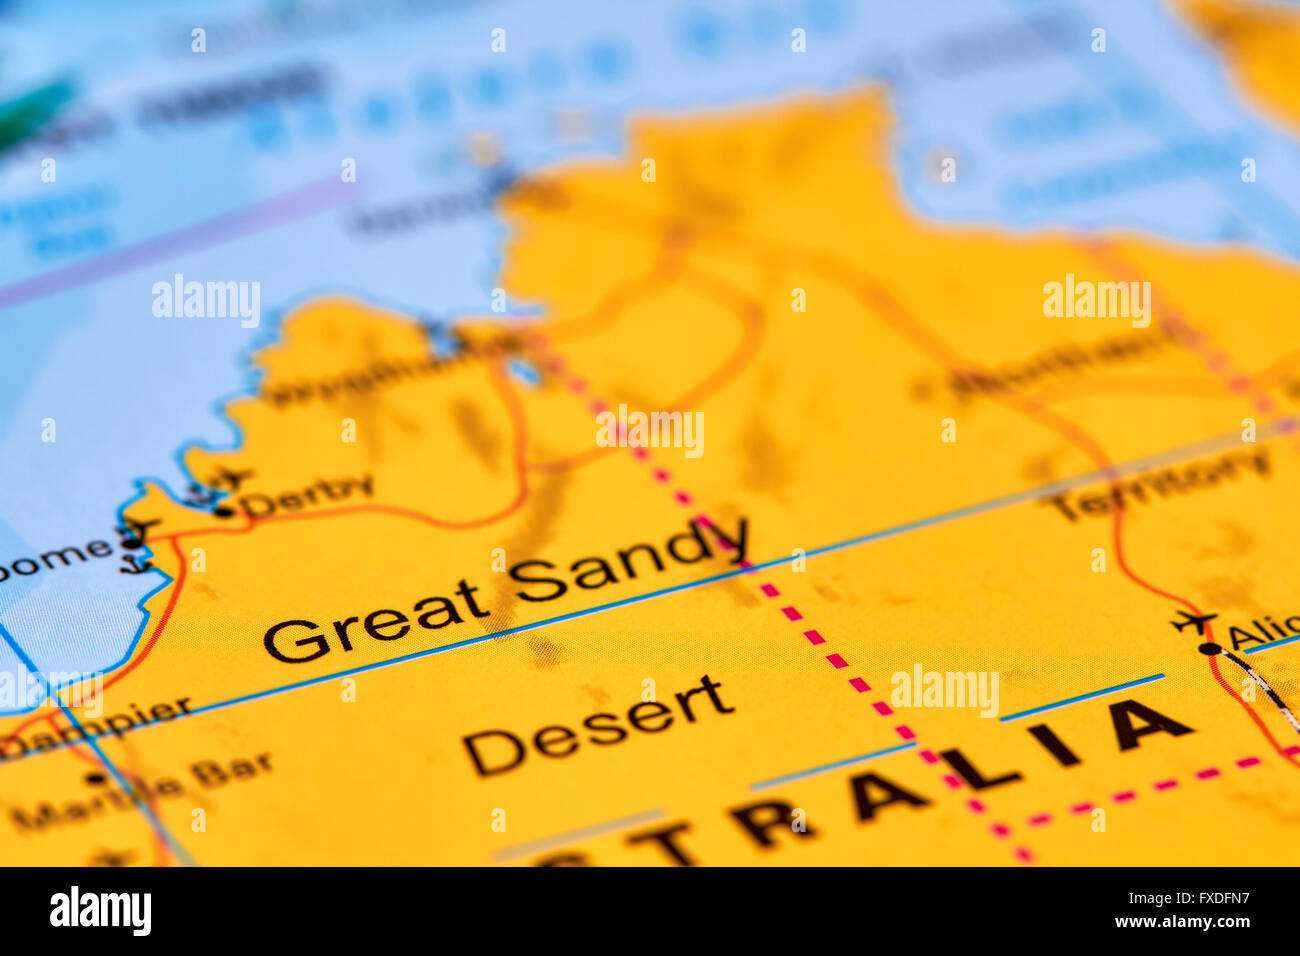 Great sandy desert in australia on the world map stock photo great sandy desert in australia on the world map gumiabroncs Choice Image